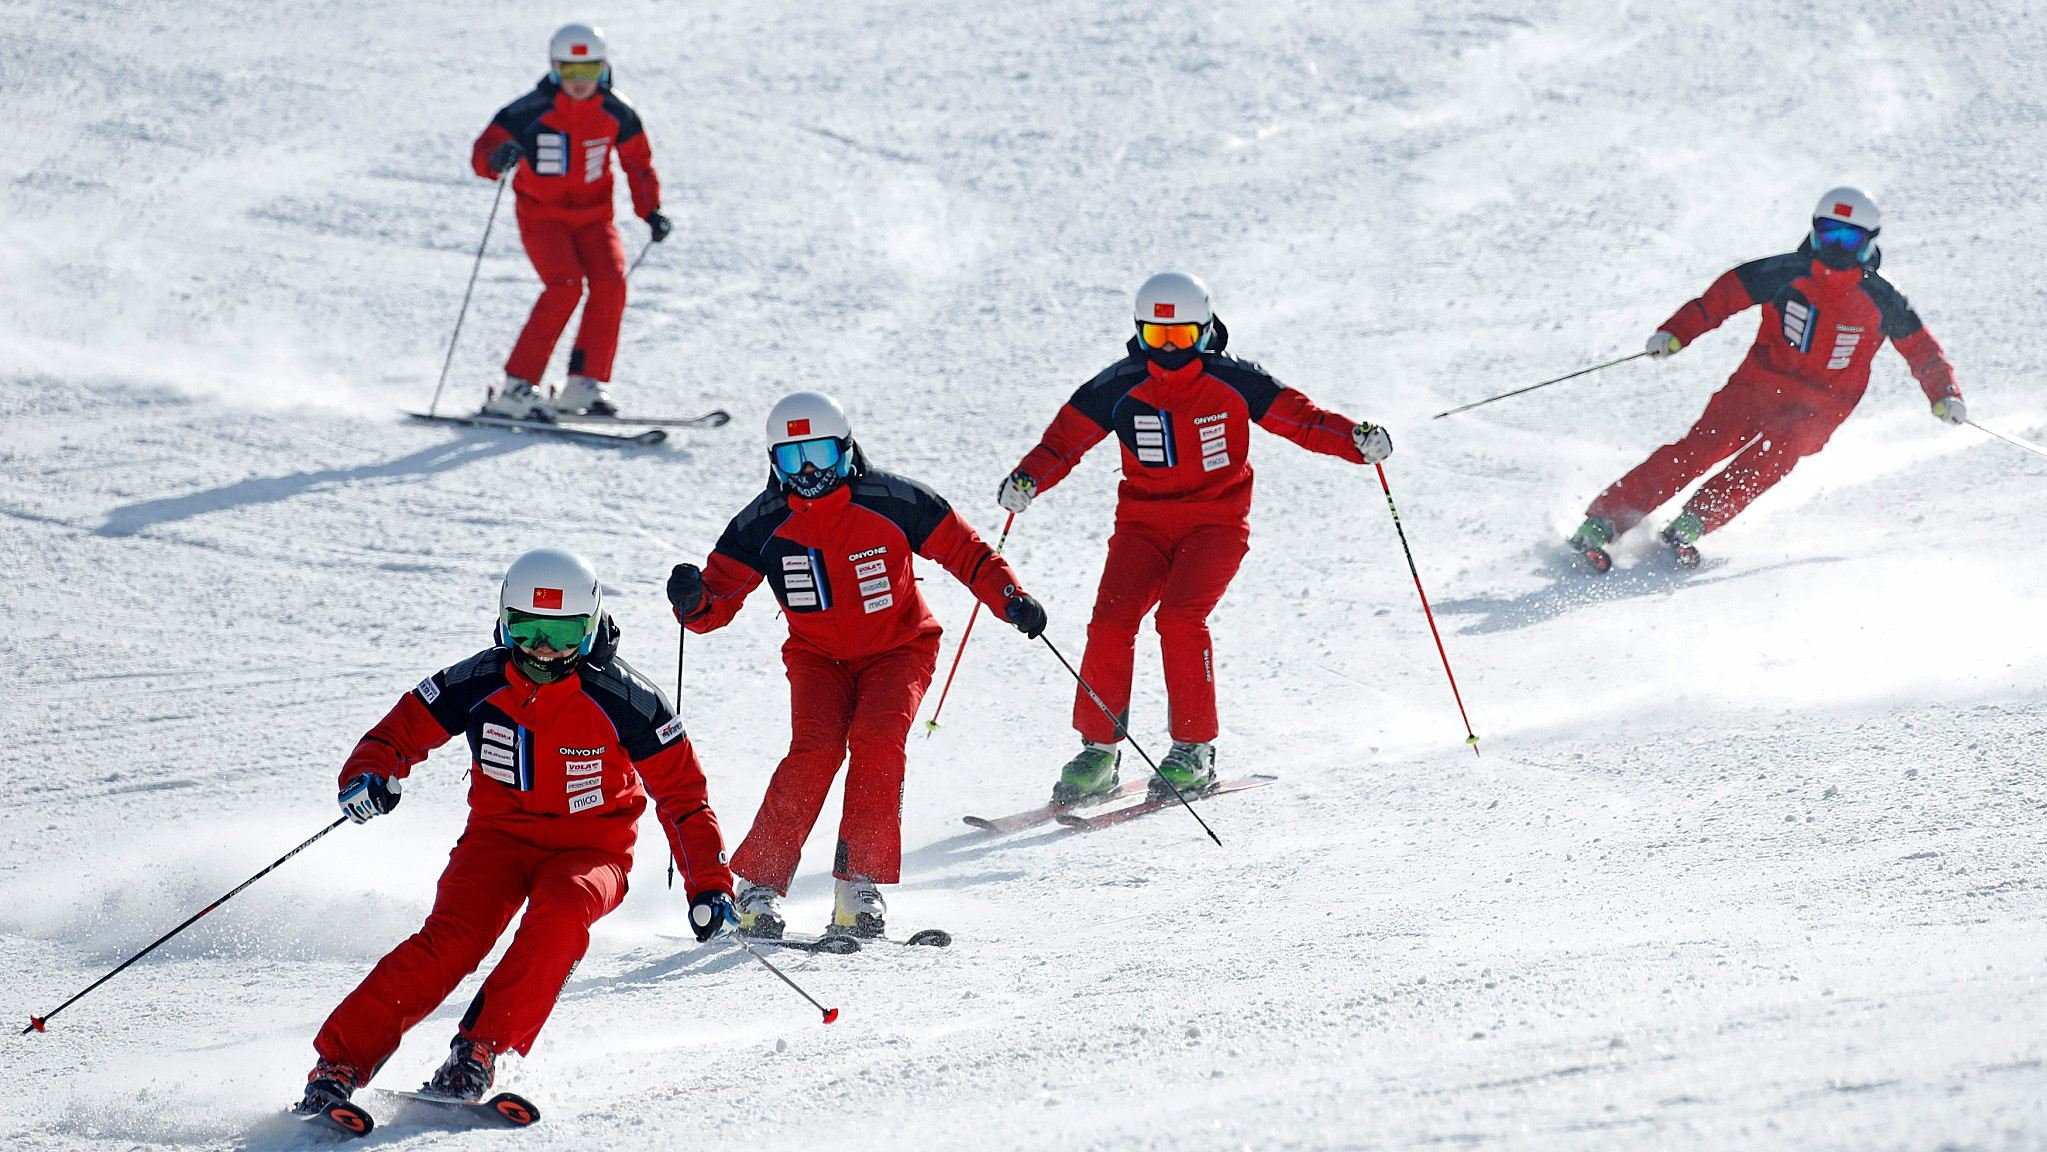 China's winter sports practitioners show confidence on countering COVID-19